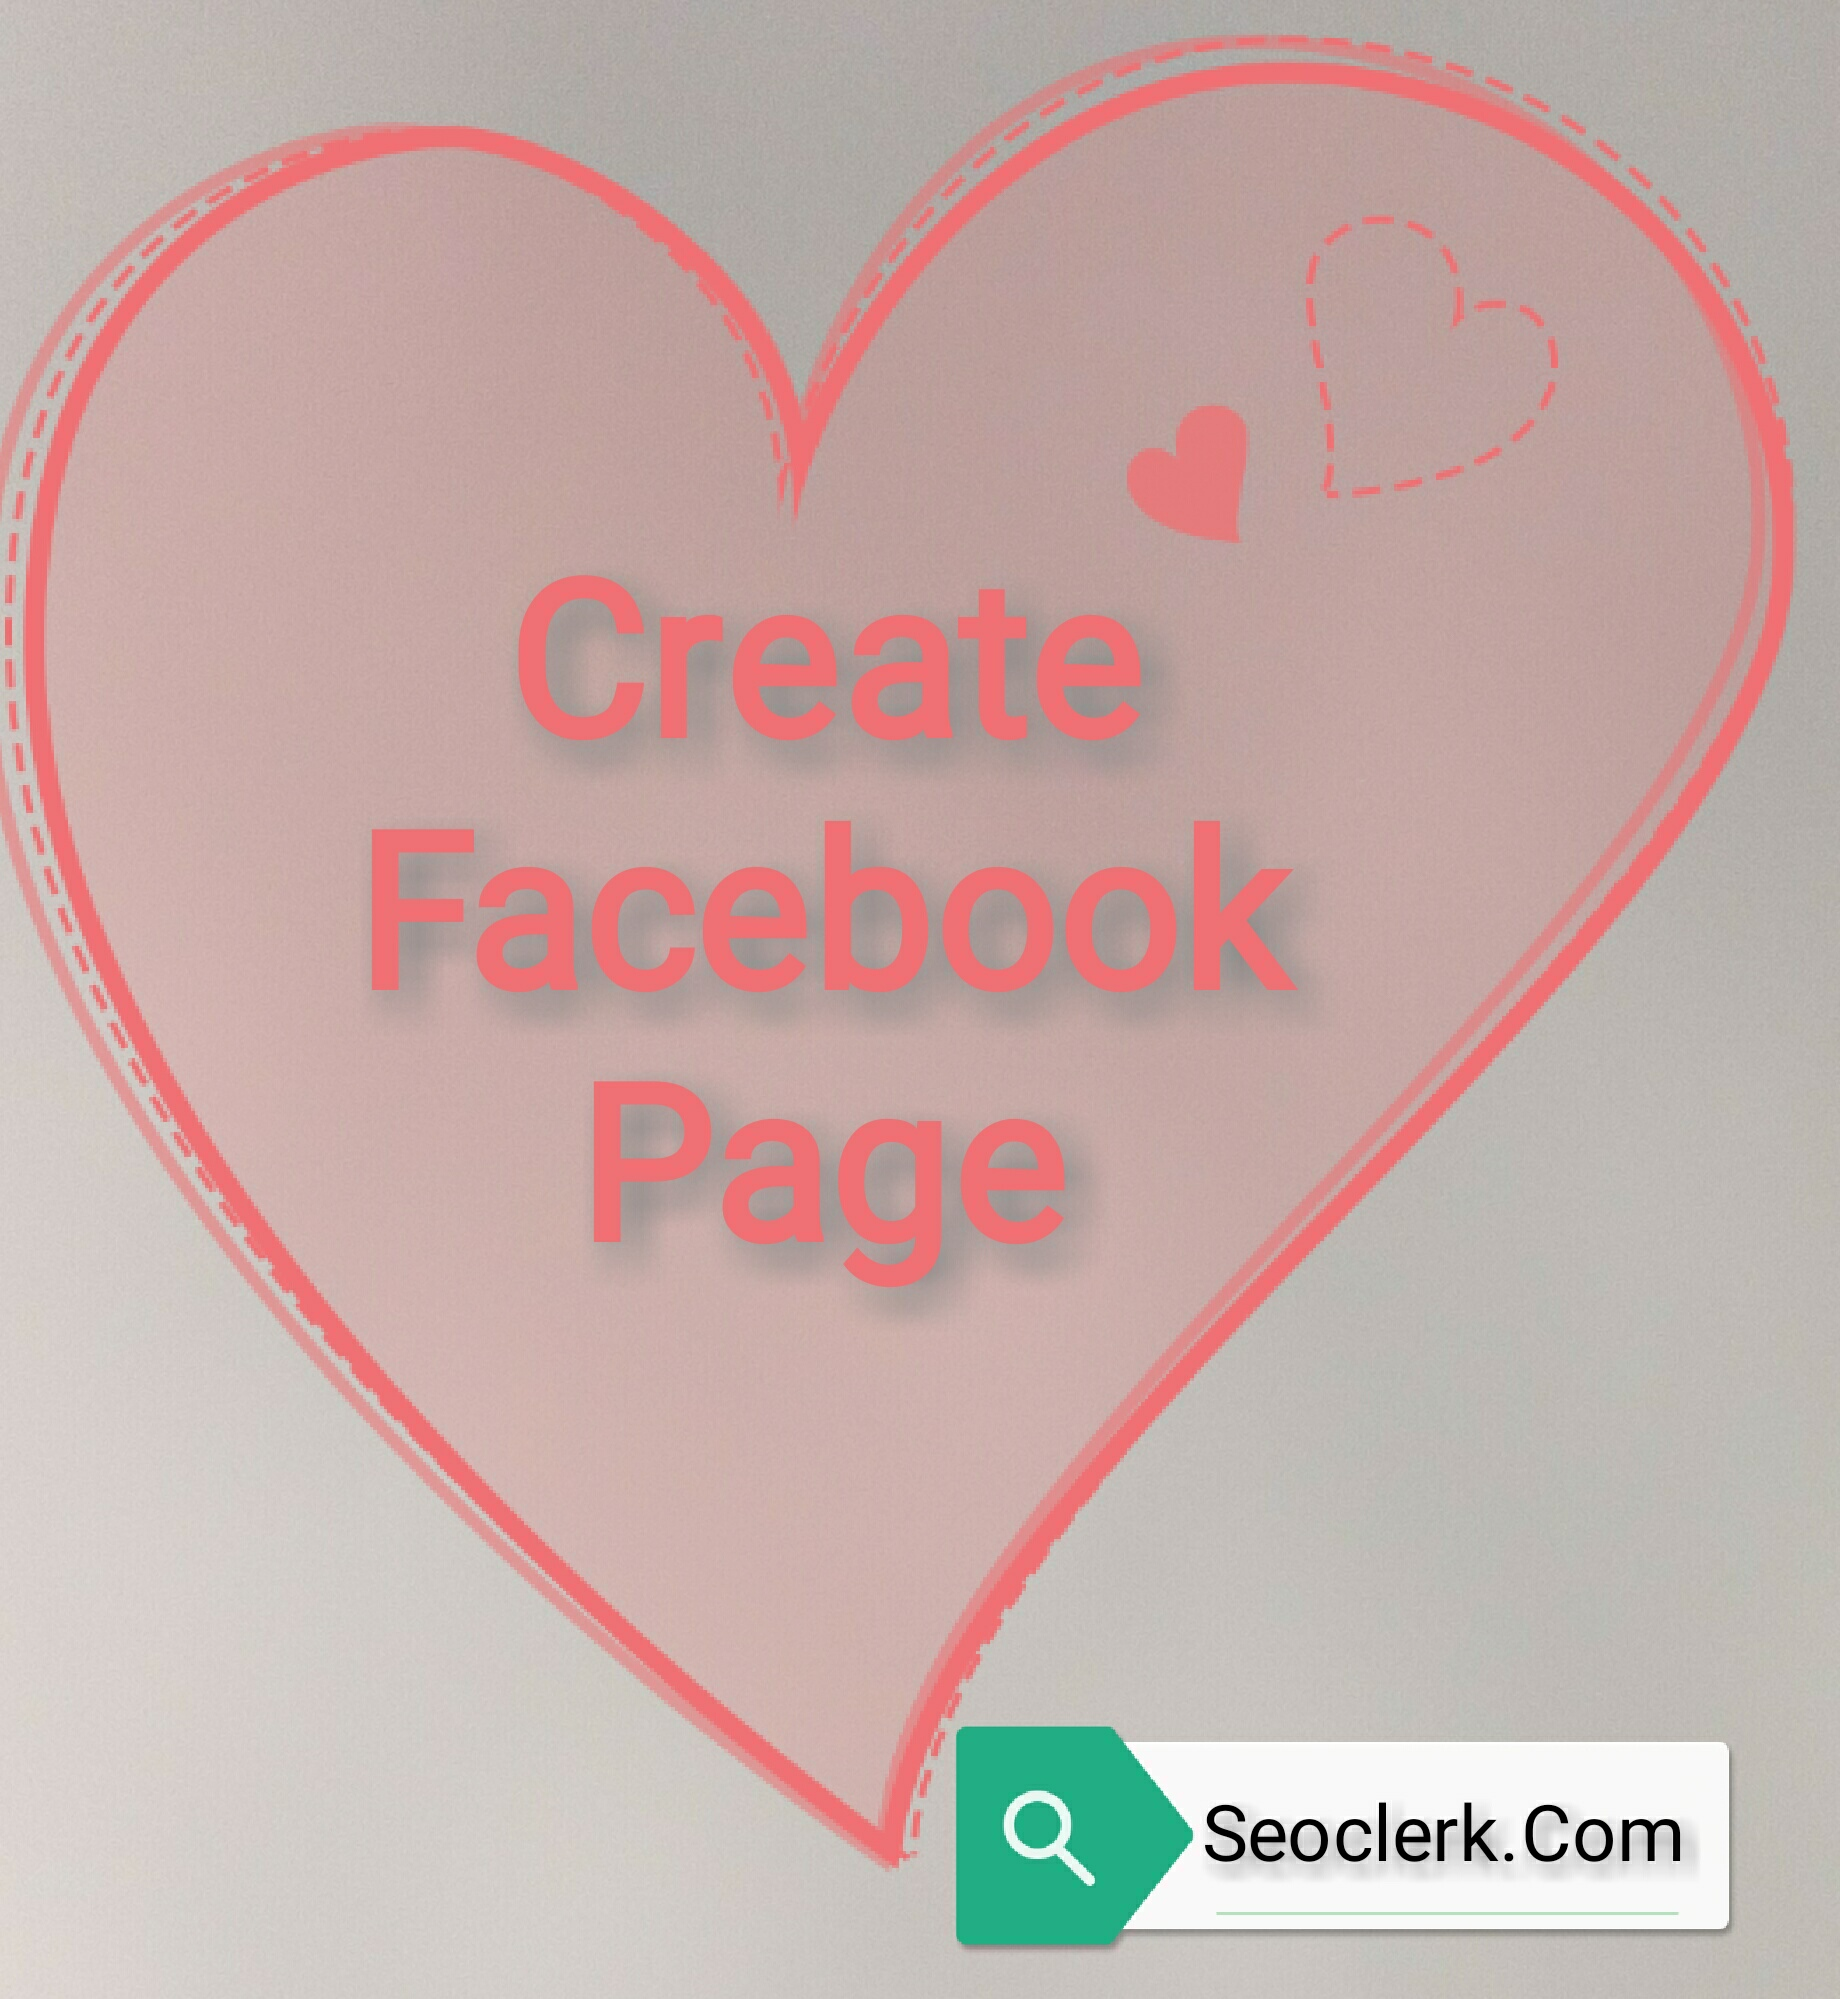 I will create new facebook page